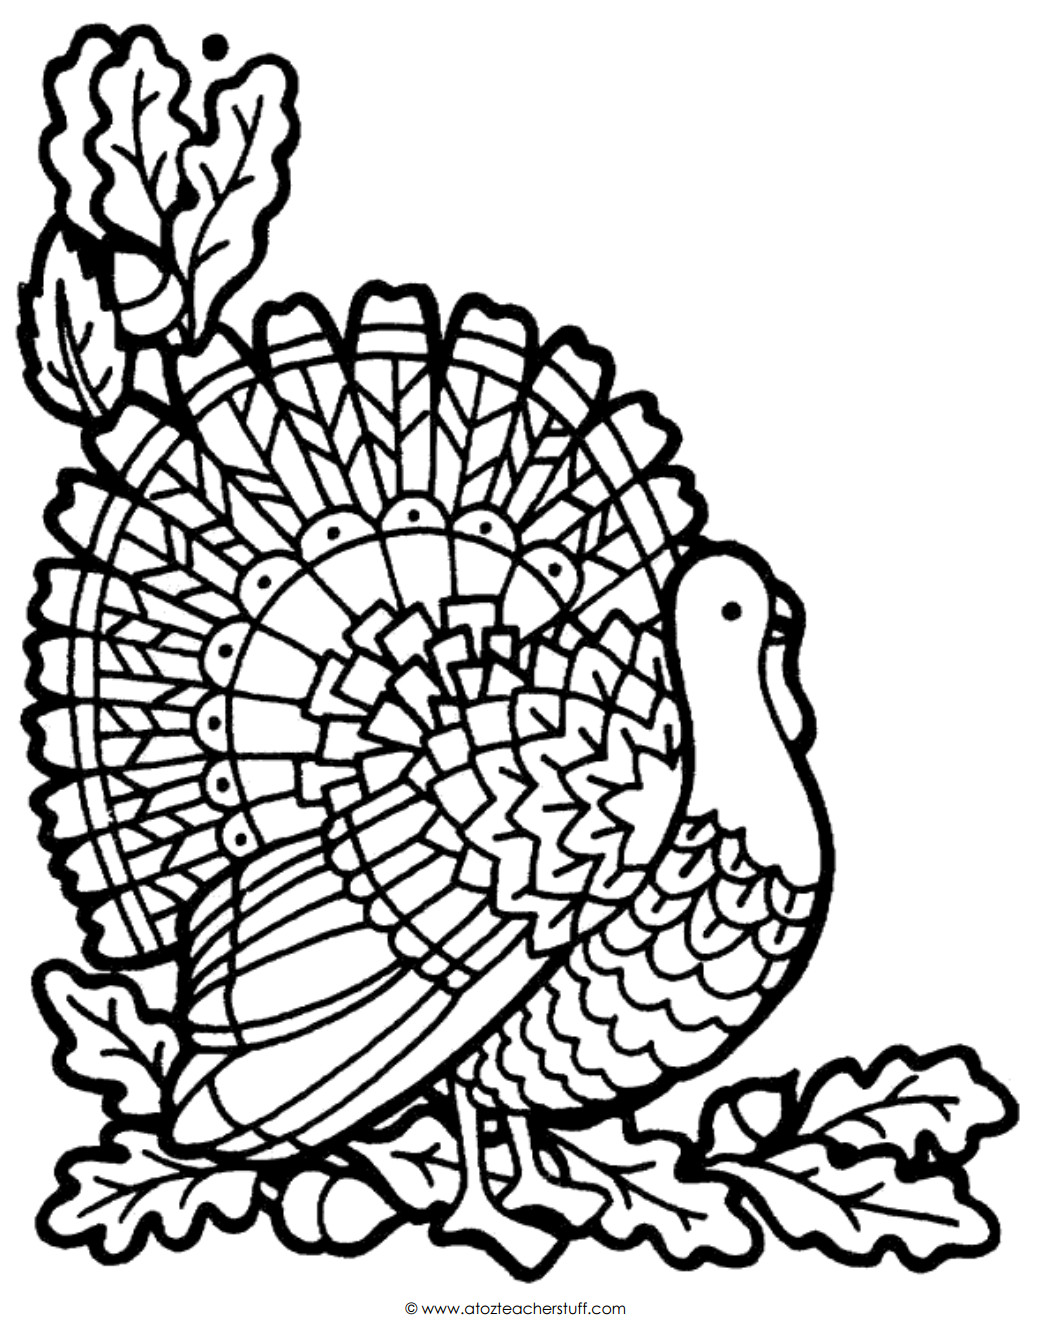 Thanksgiving Turkey Coloring Pages Printables  Turkey Coloring Page